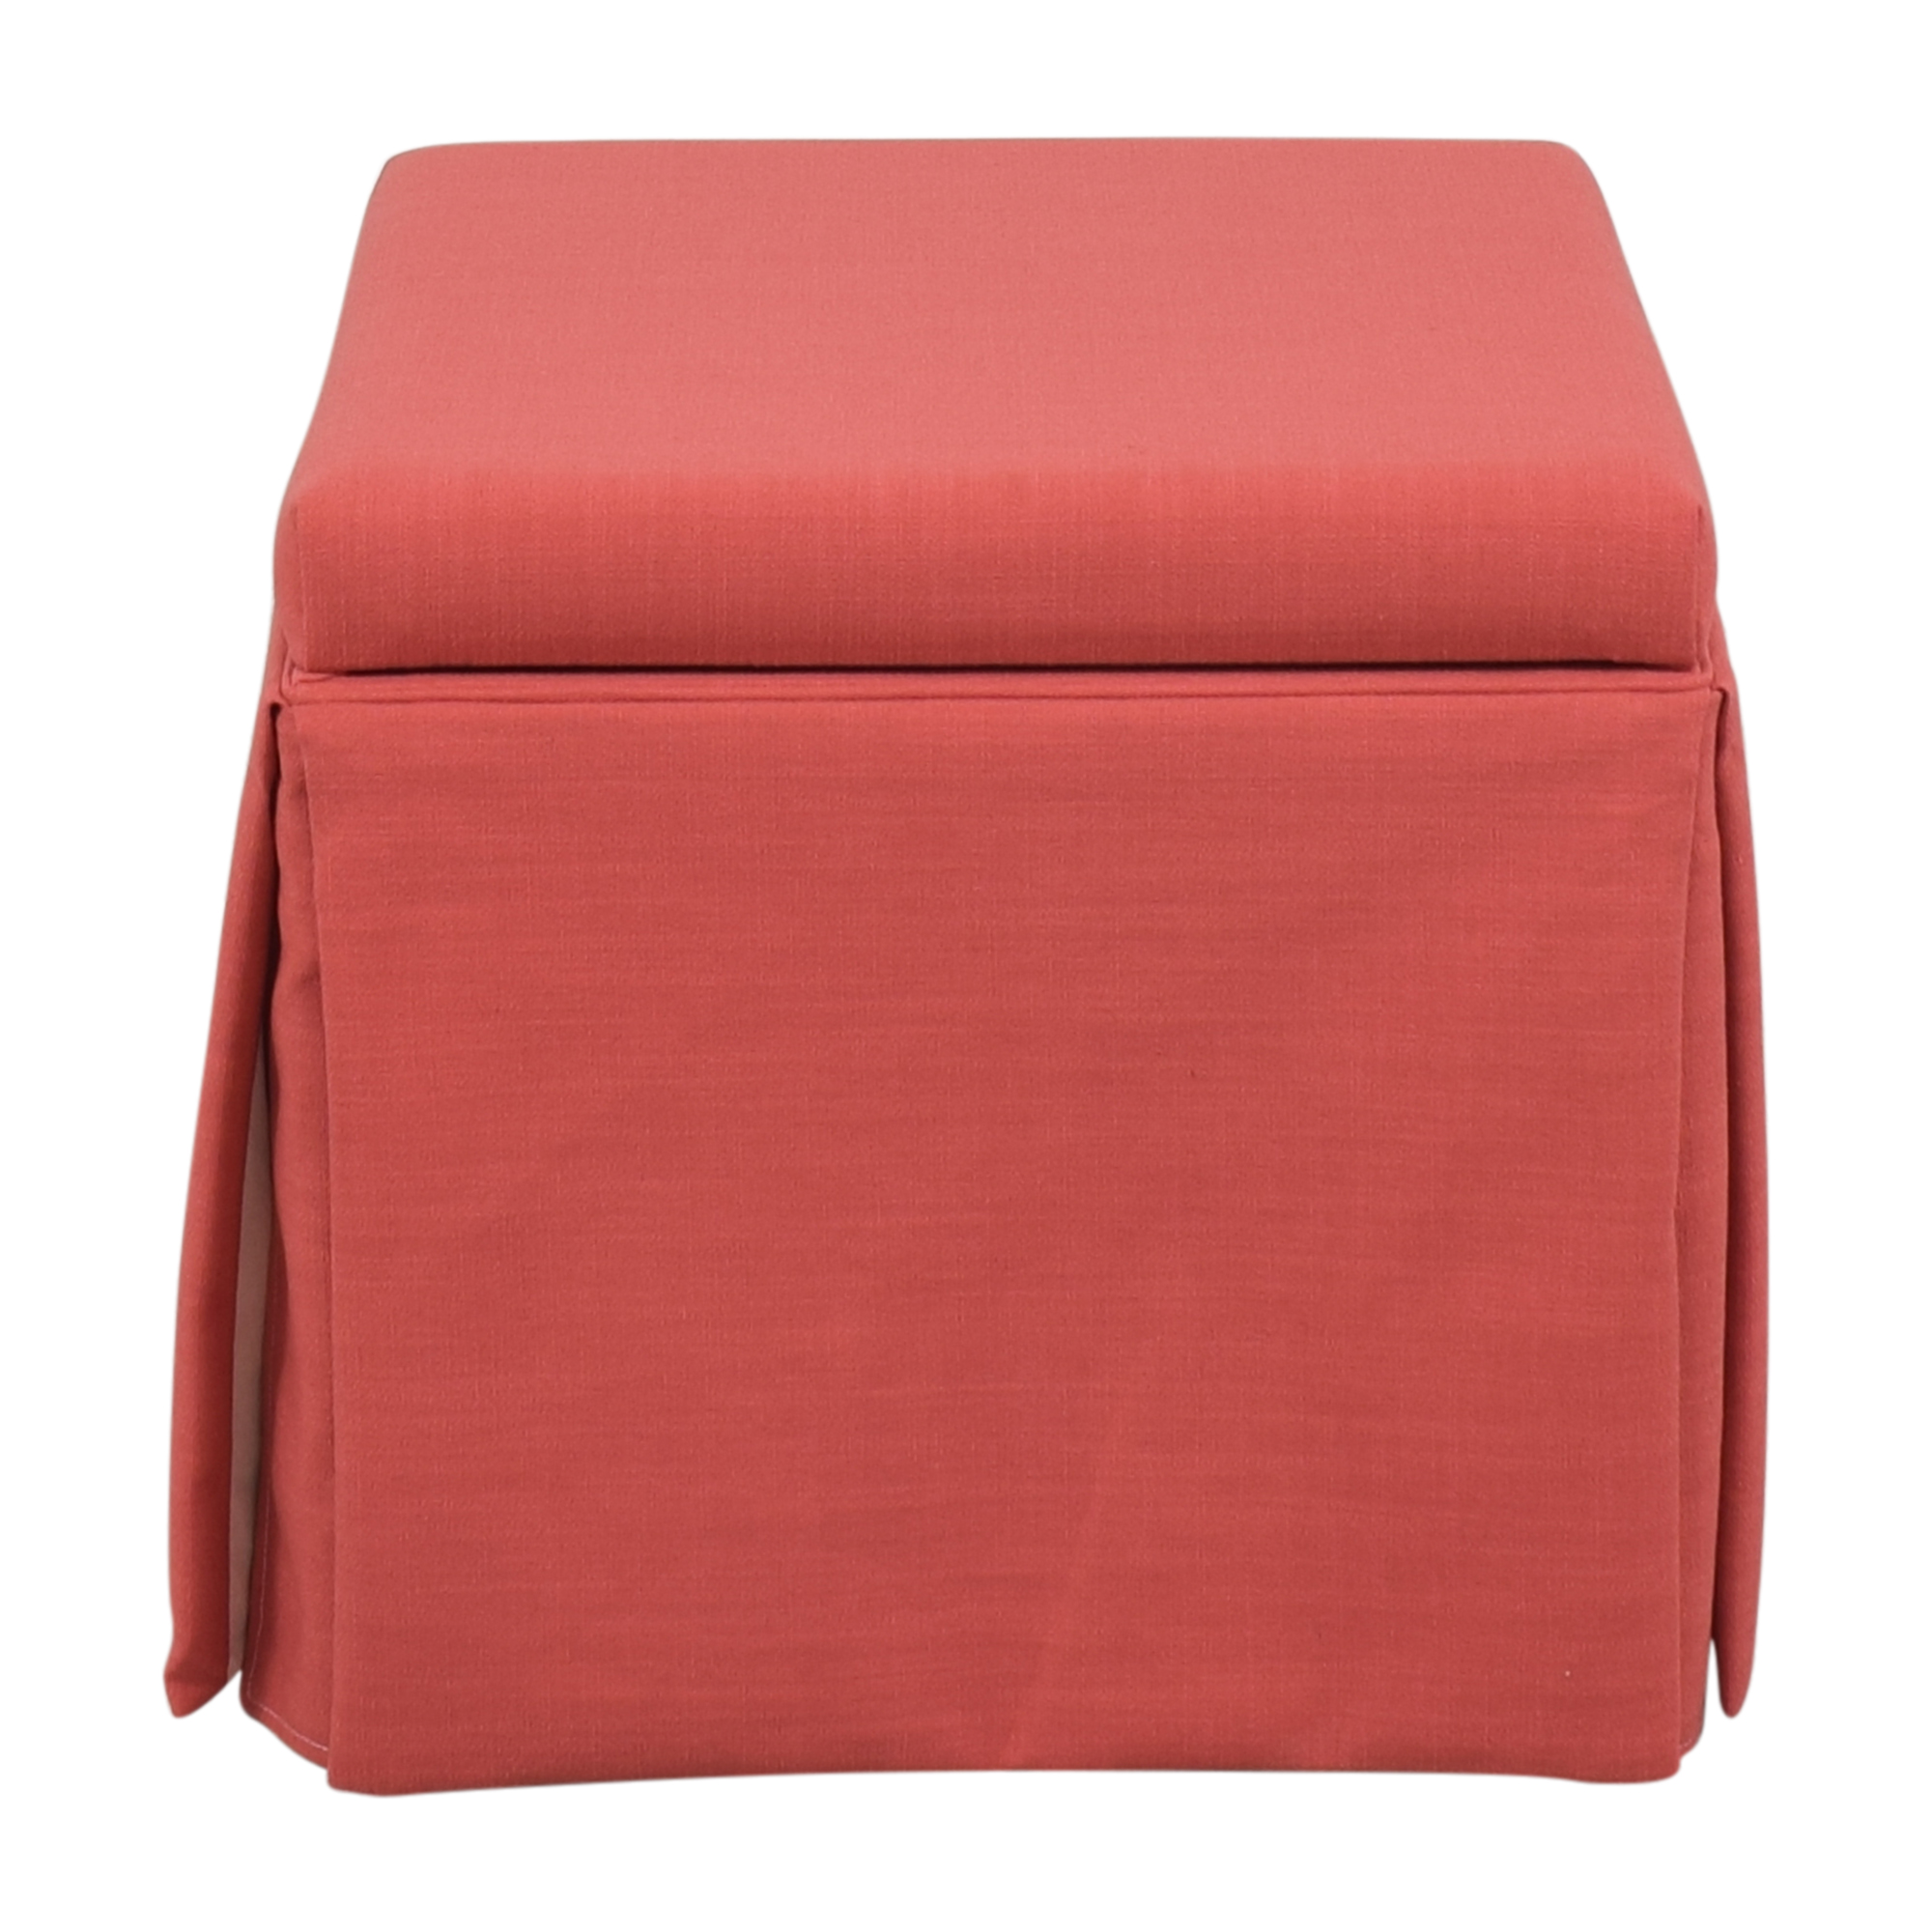 The Inside The Inside Skirted Storage Ottoman pa